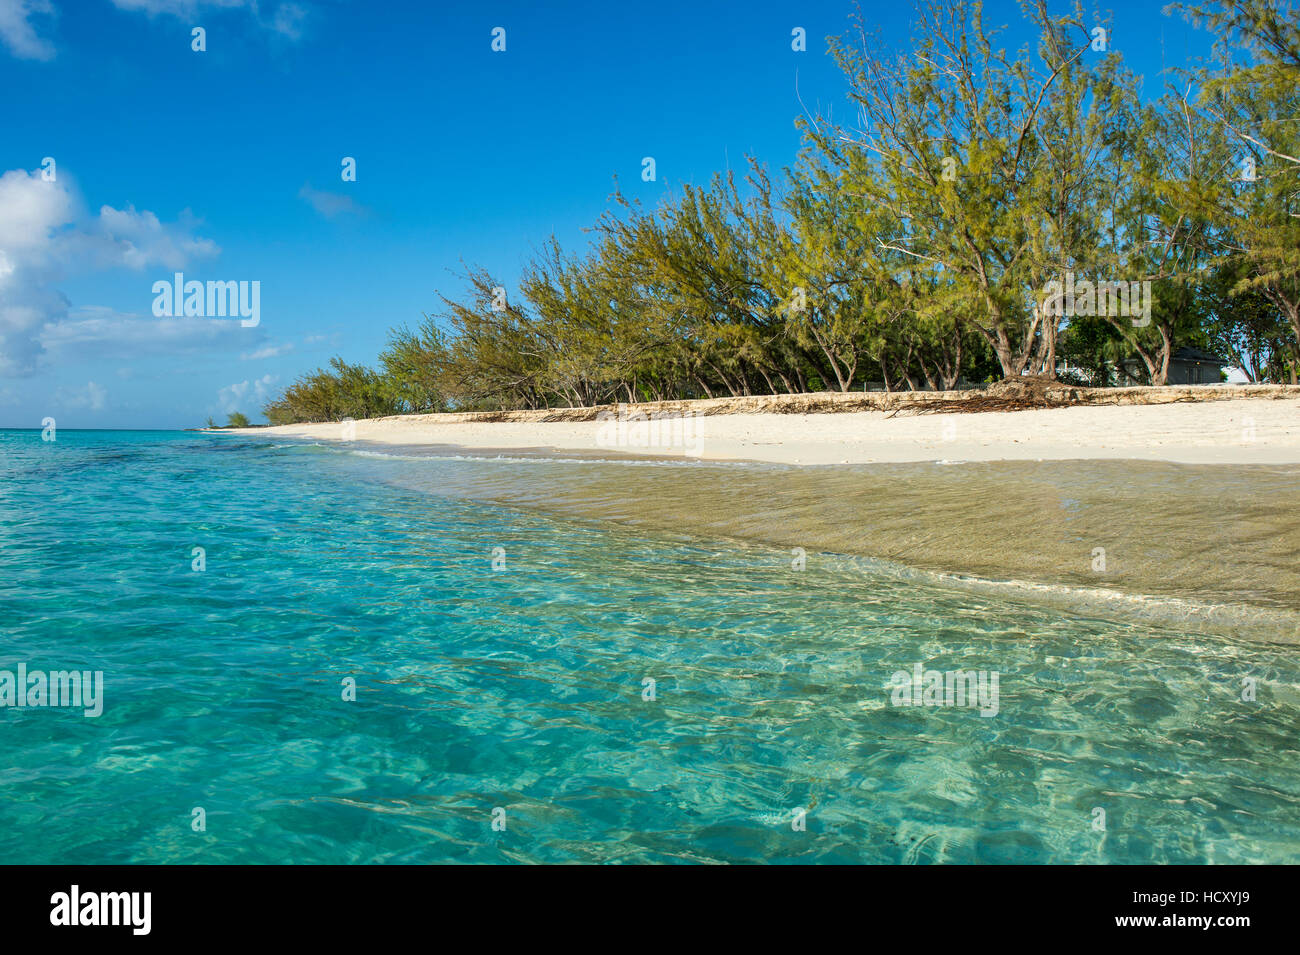 Norman Saunders beach, Grand Turk, Turks and Caicos, Caribbean - Stock Image